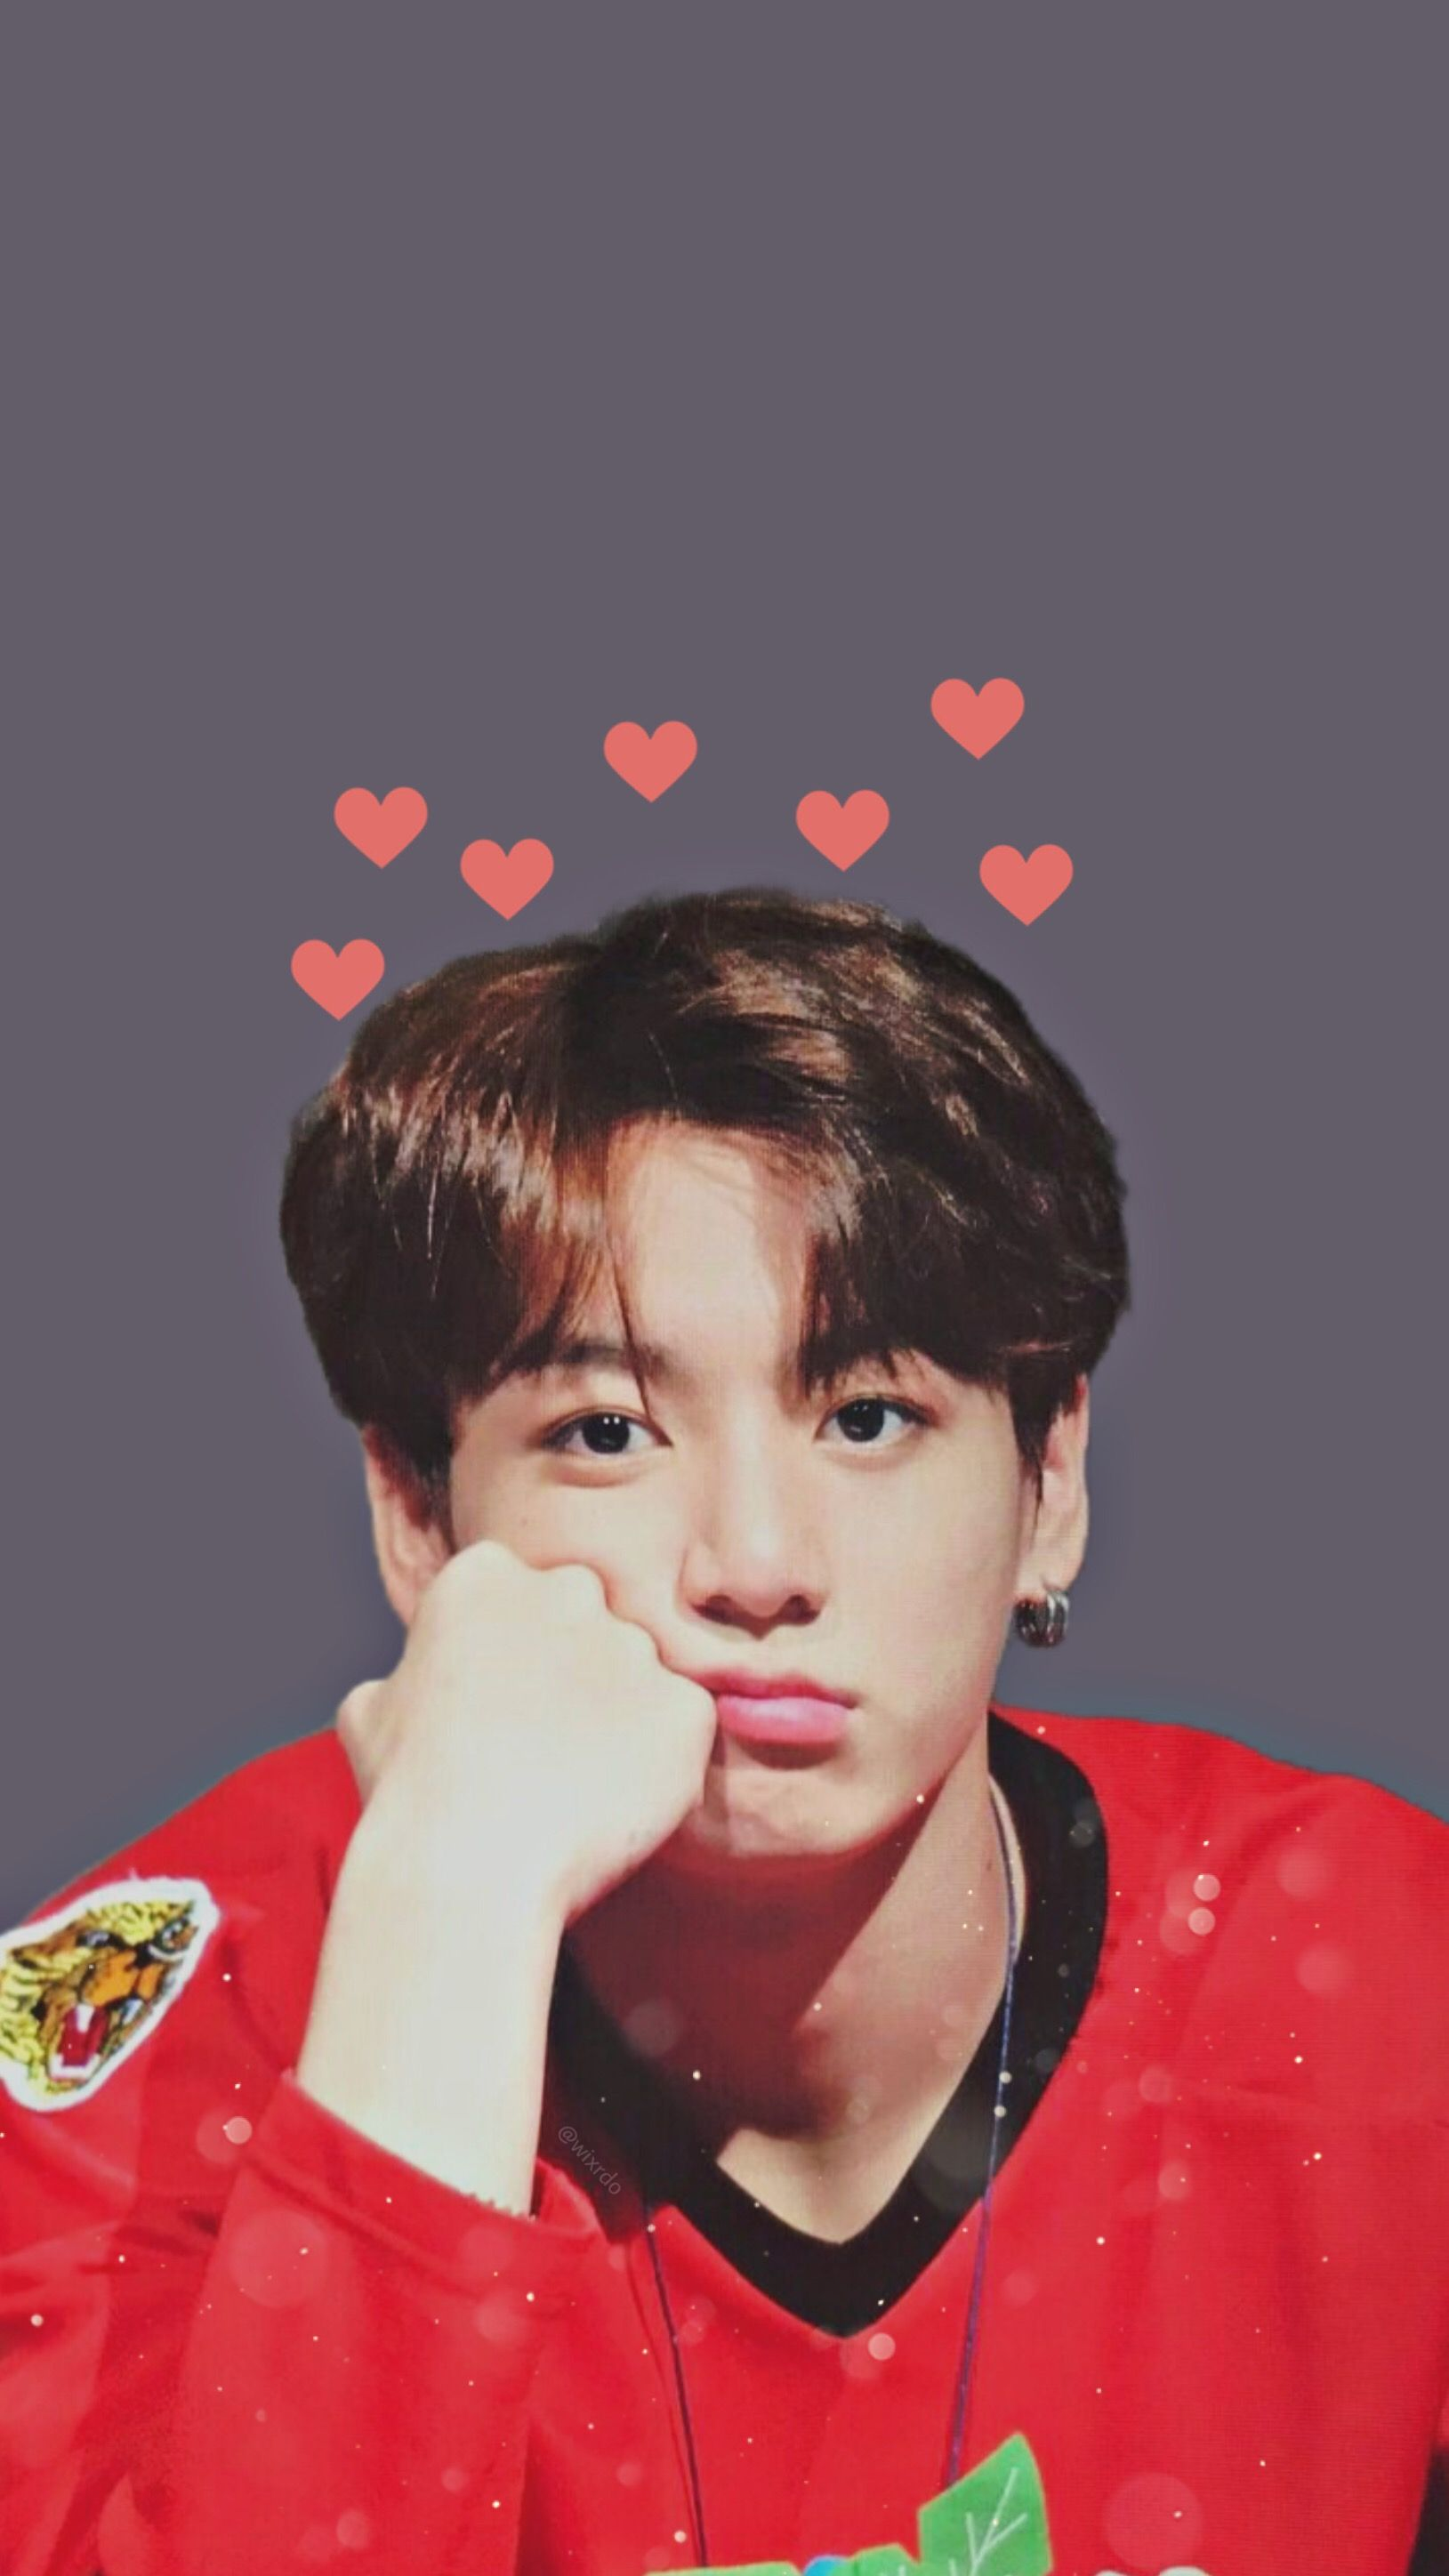 jungkook bts bangtan wallpaper Jungkook Wallpapers di 2019 1629x2896